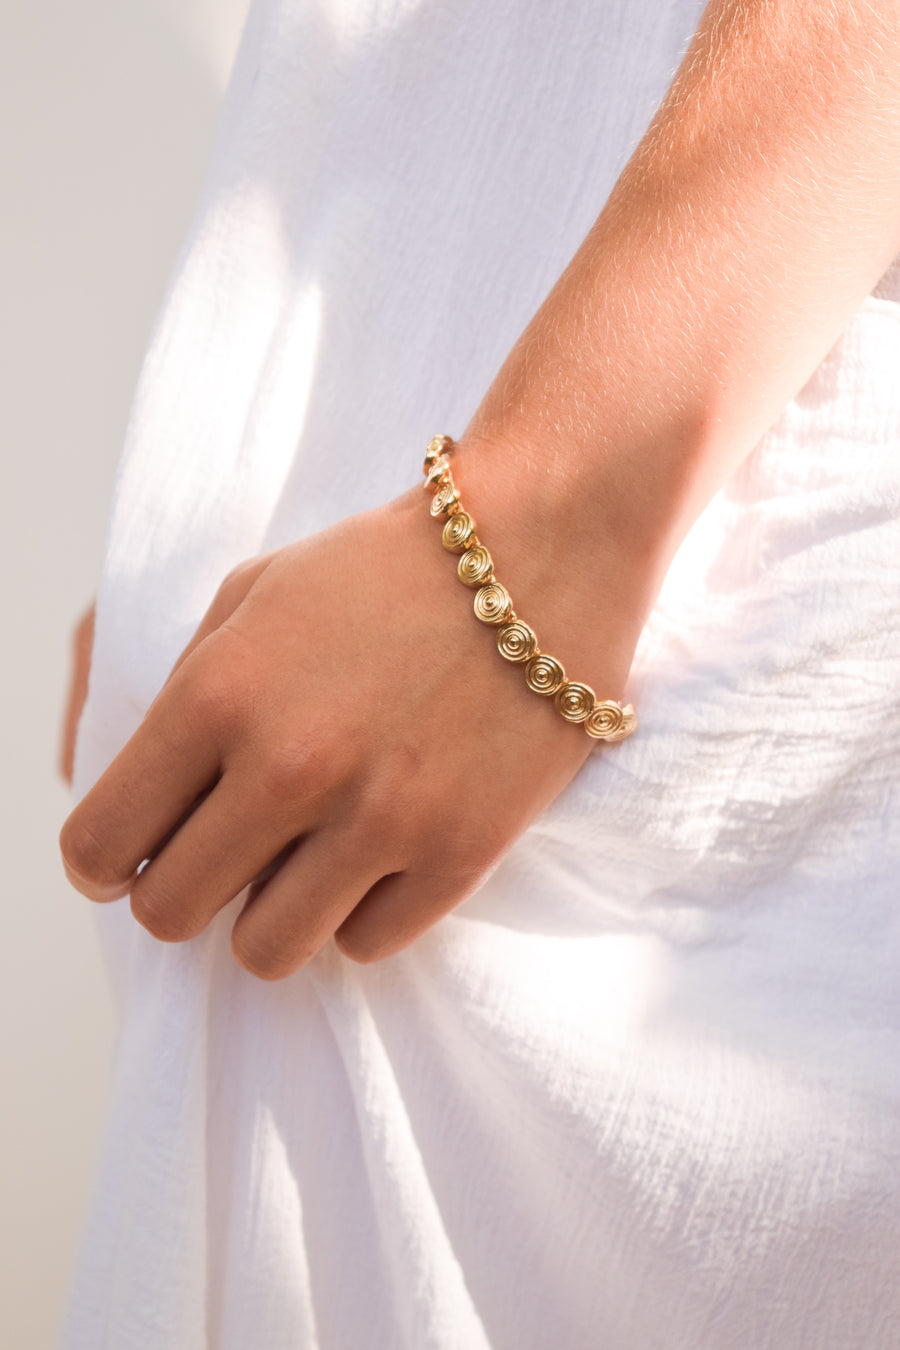 Abundance tennis bracelet on model. 14k yellow gold bracelet linked together with circle designs and is 7.5 inches. Handmade by local jewelry designer, Nina Berenato, in Austin, Texas.